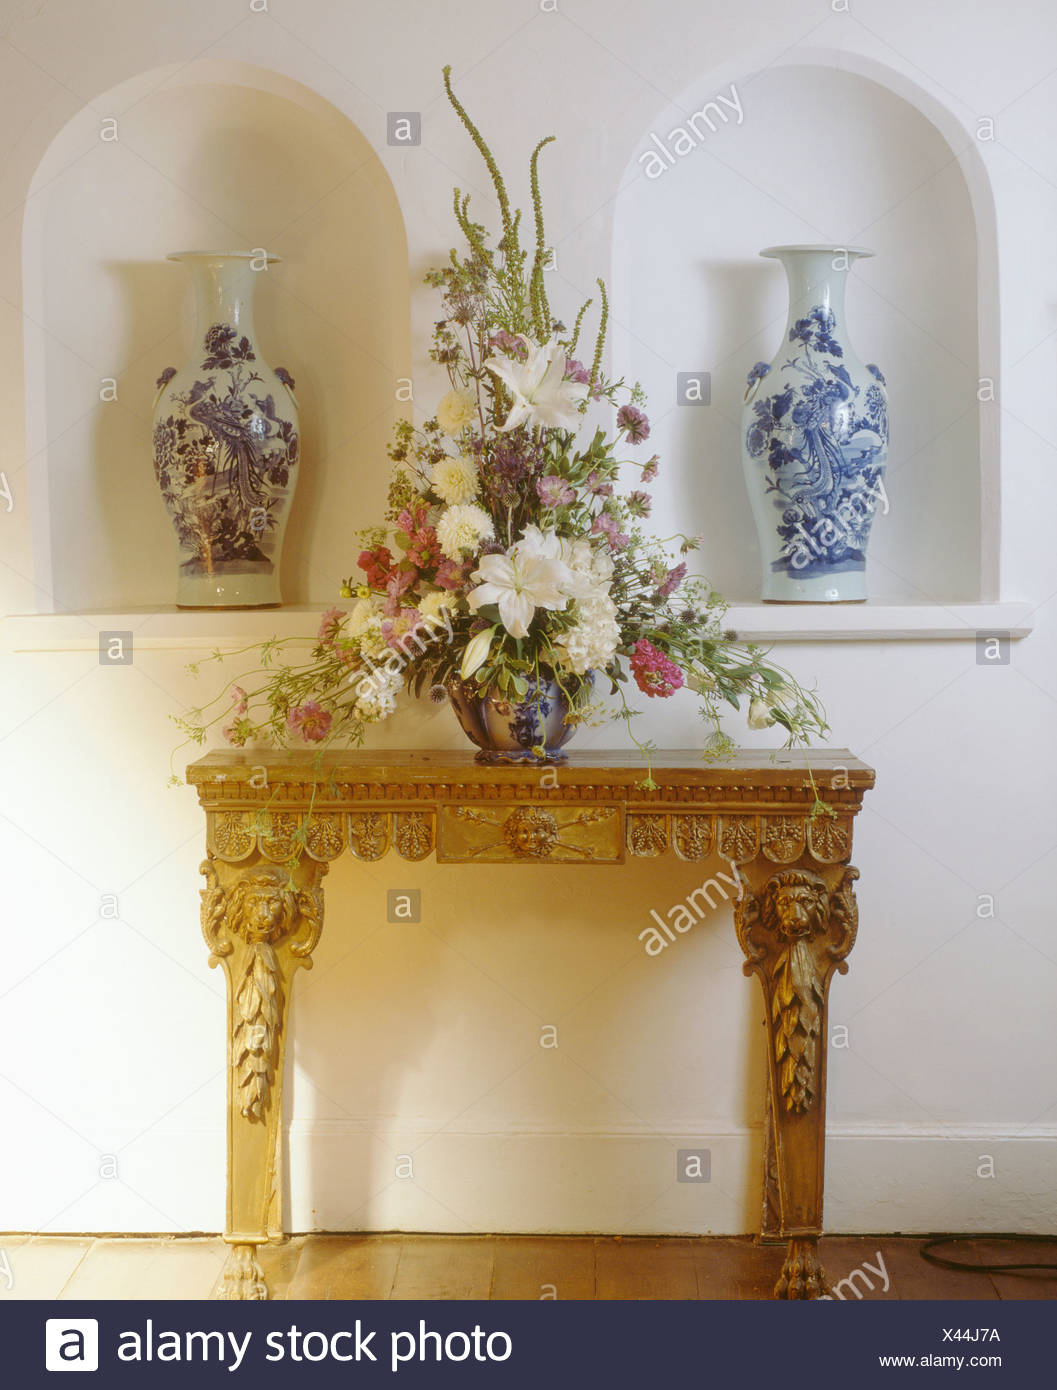 White lilies in fresh floral arrangement on console table in front white lilies in fresh floral arrangement on console table in front of alcoves with tall blue and white vases izmirmasajfo